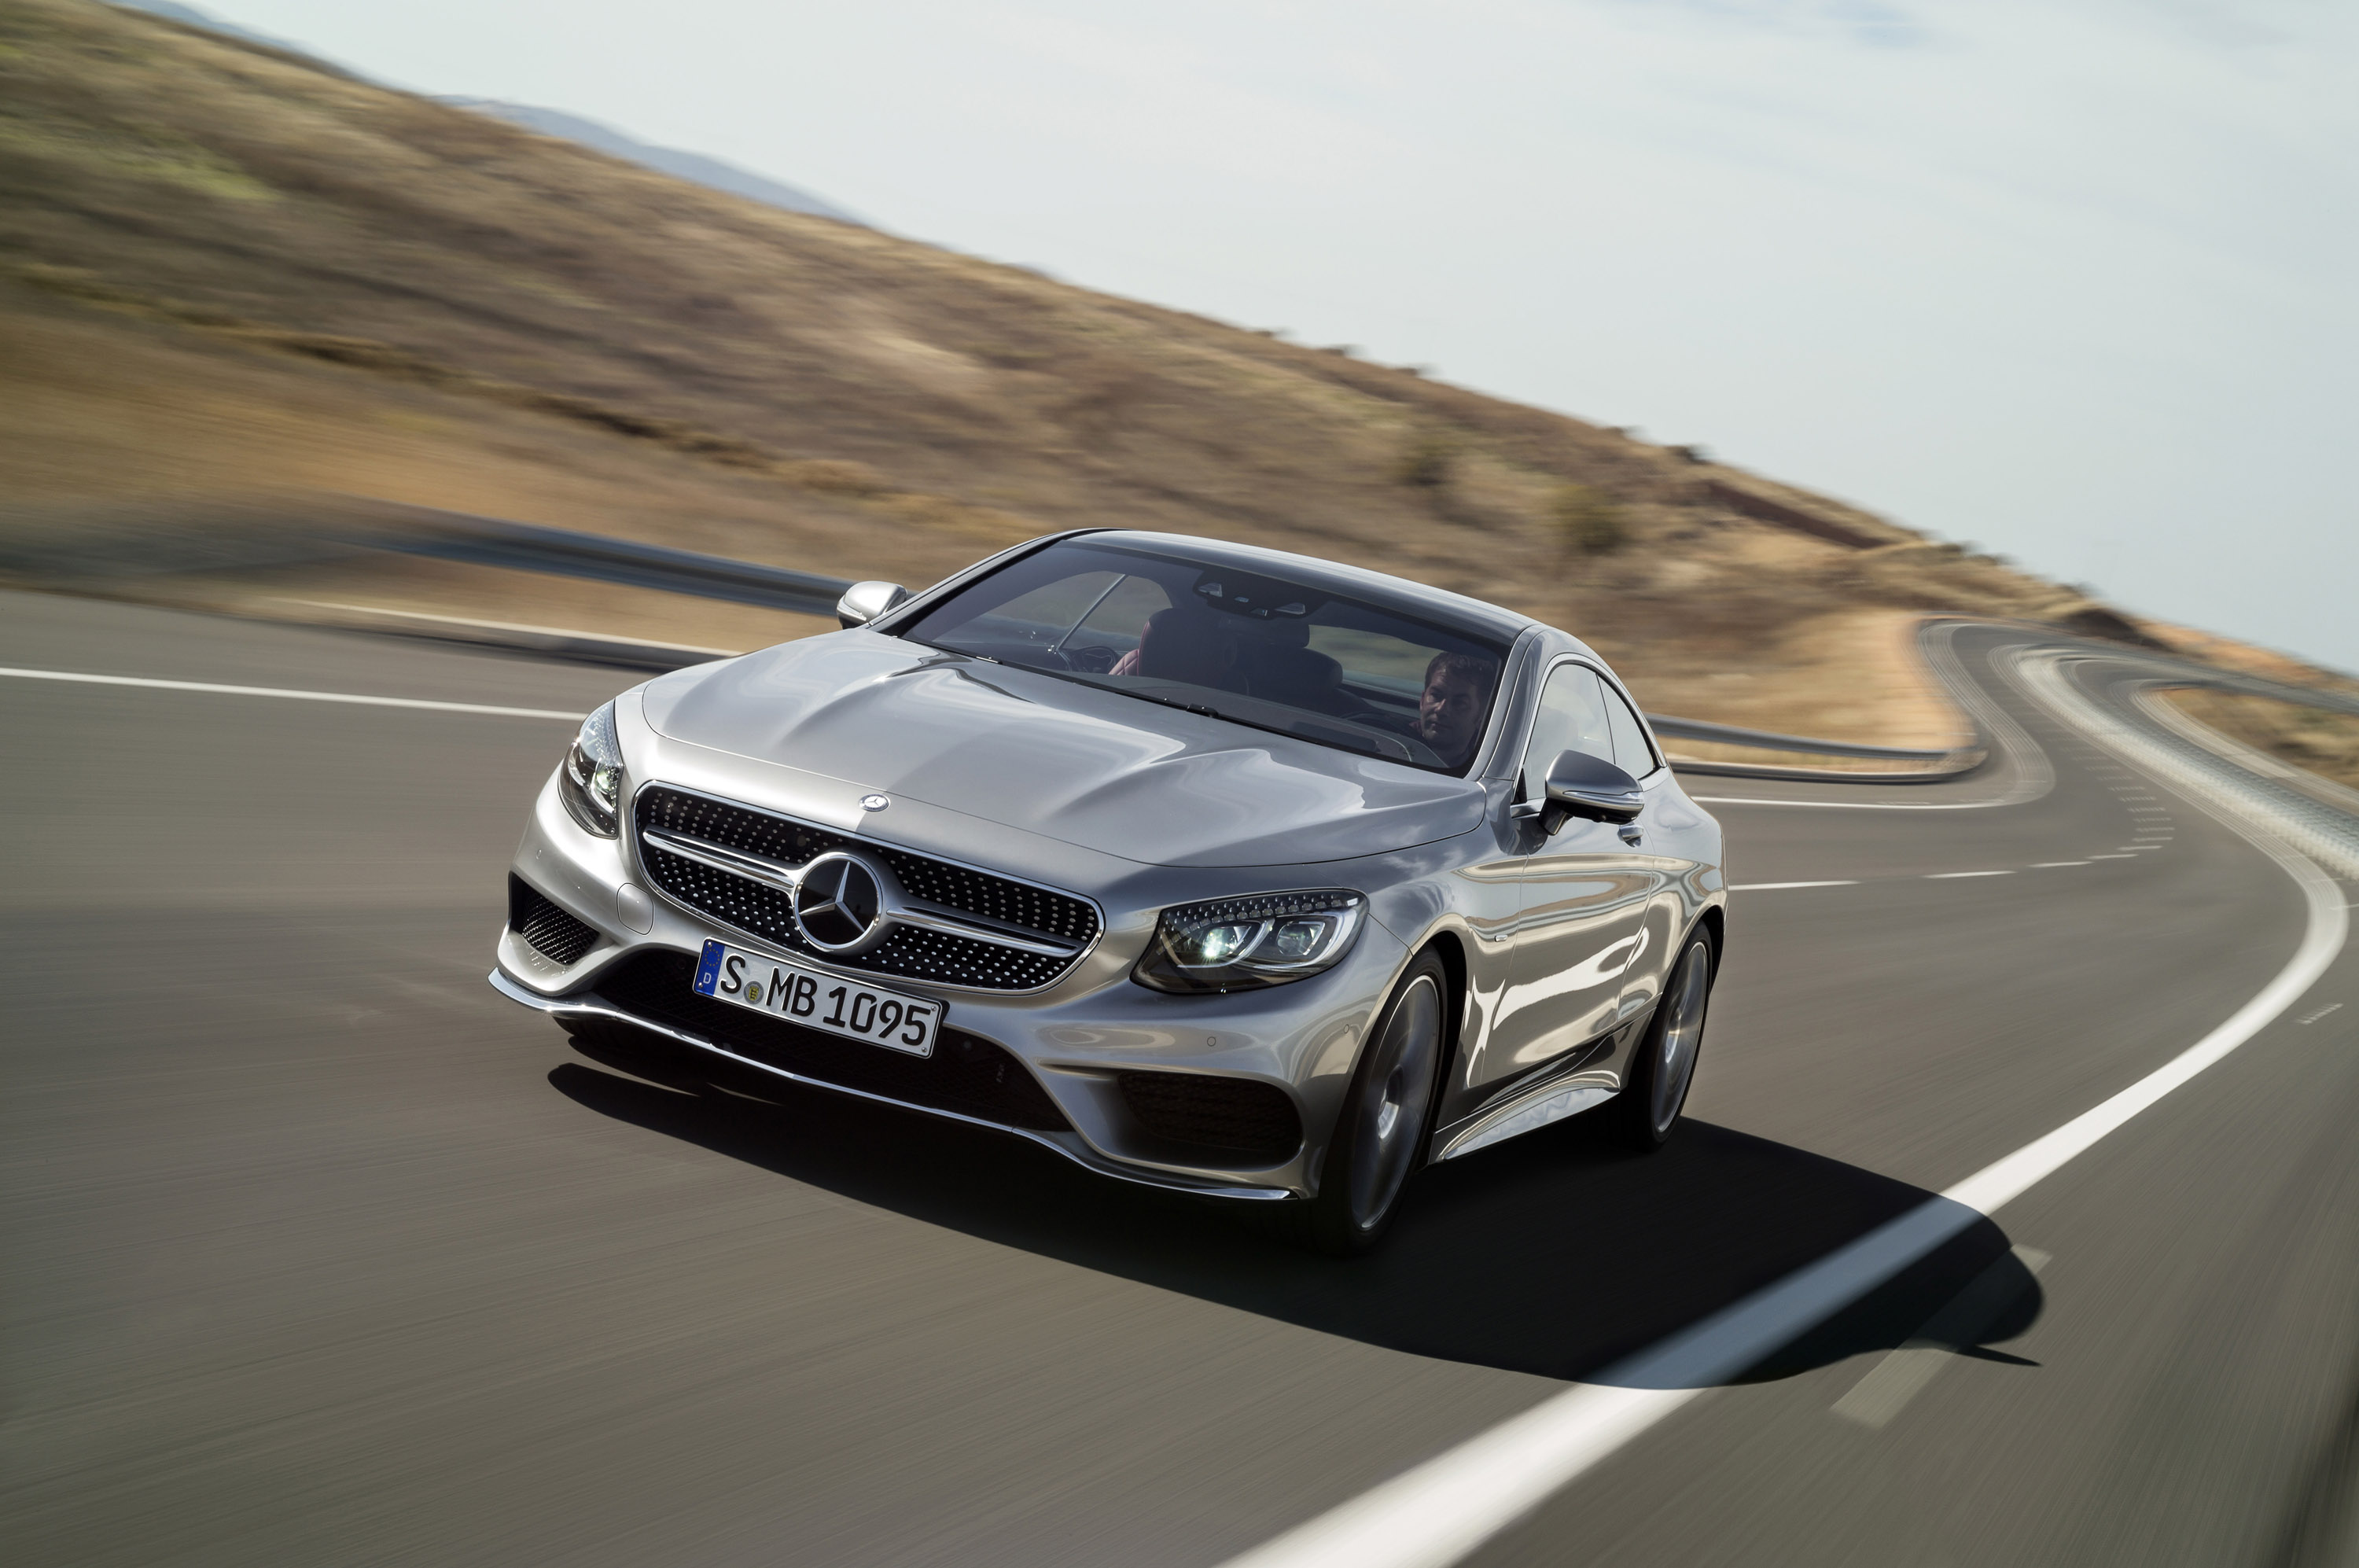 2015 mercedes benz s class coupe full details